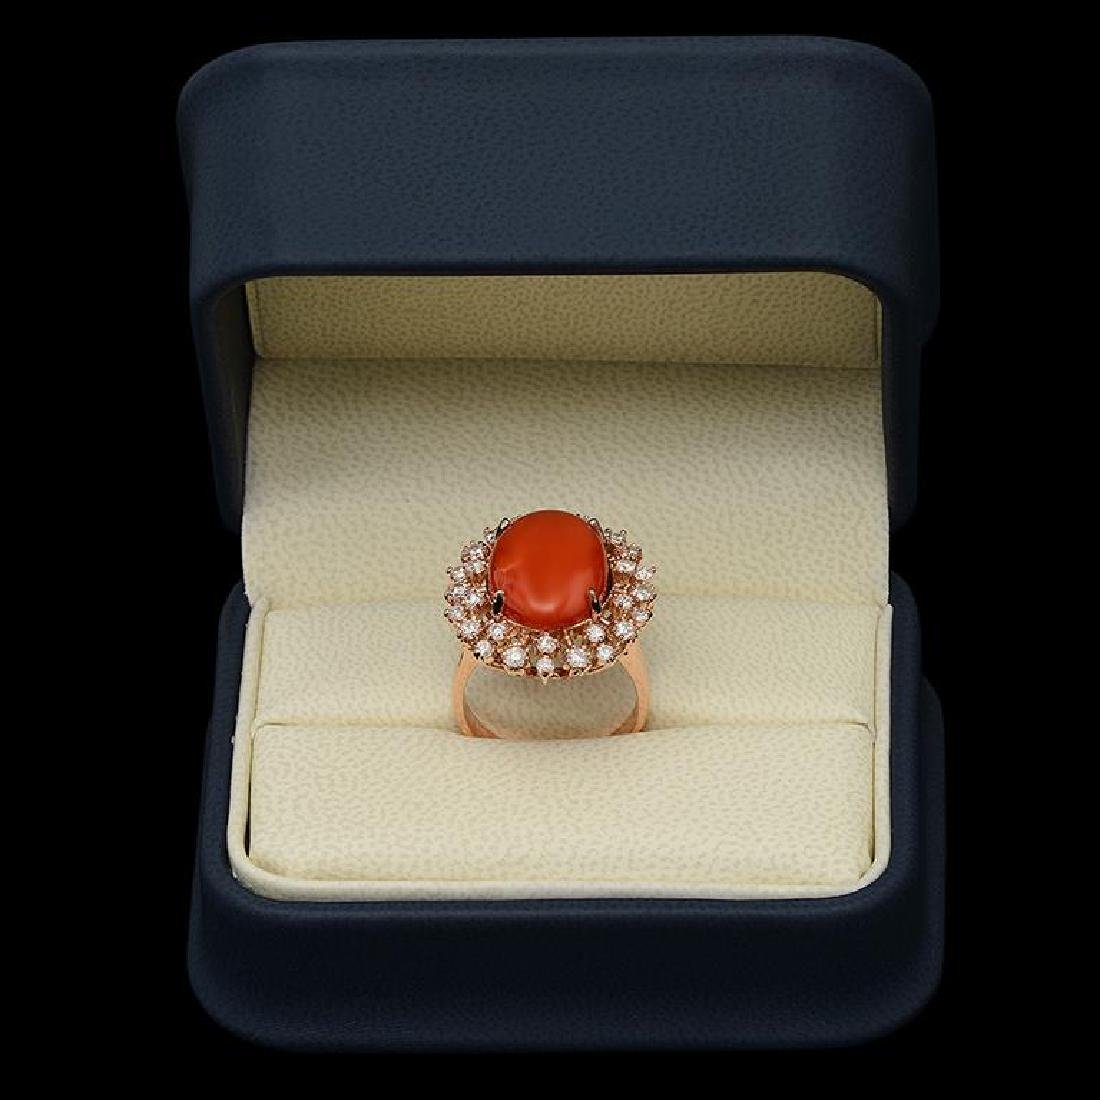 14K Gold 7.63ct Coral & 1.00ct Diamond Ring - 3